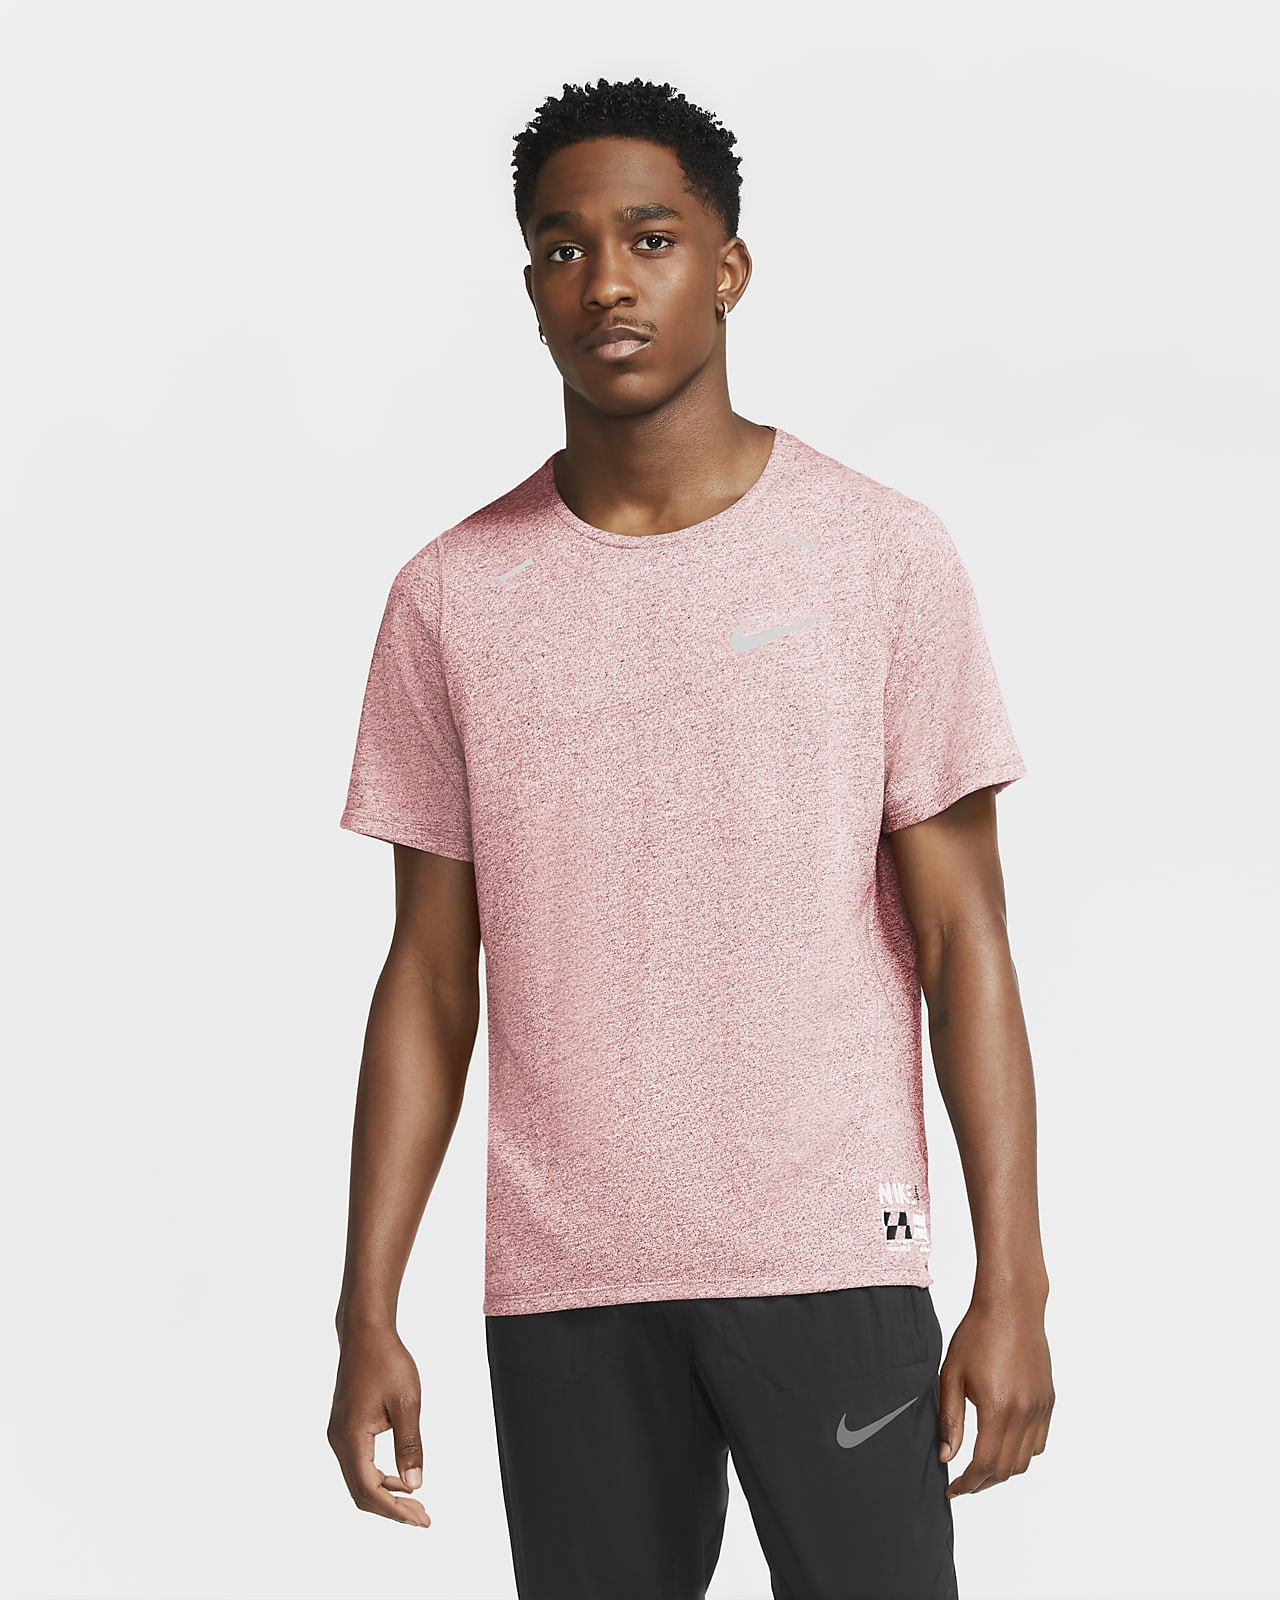 Nike Rise 365 Future Fast Men's Running Top